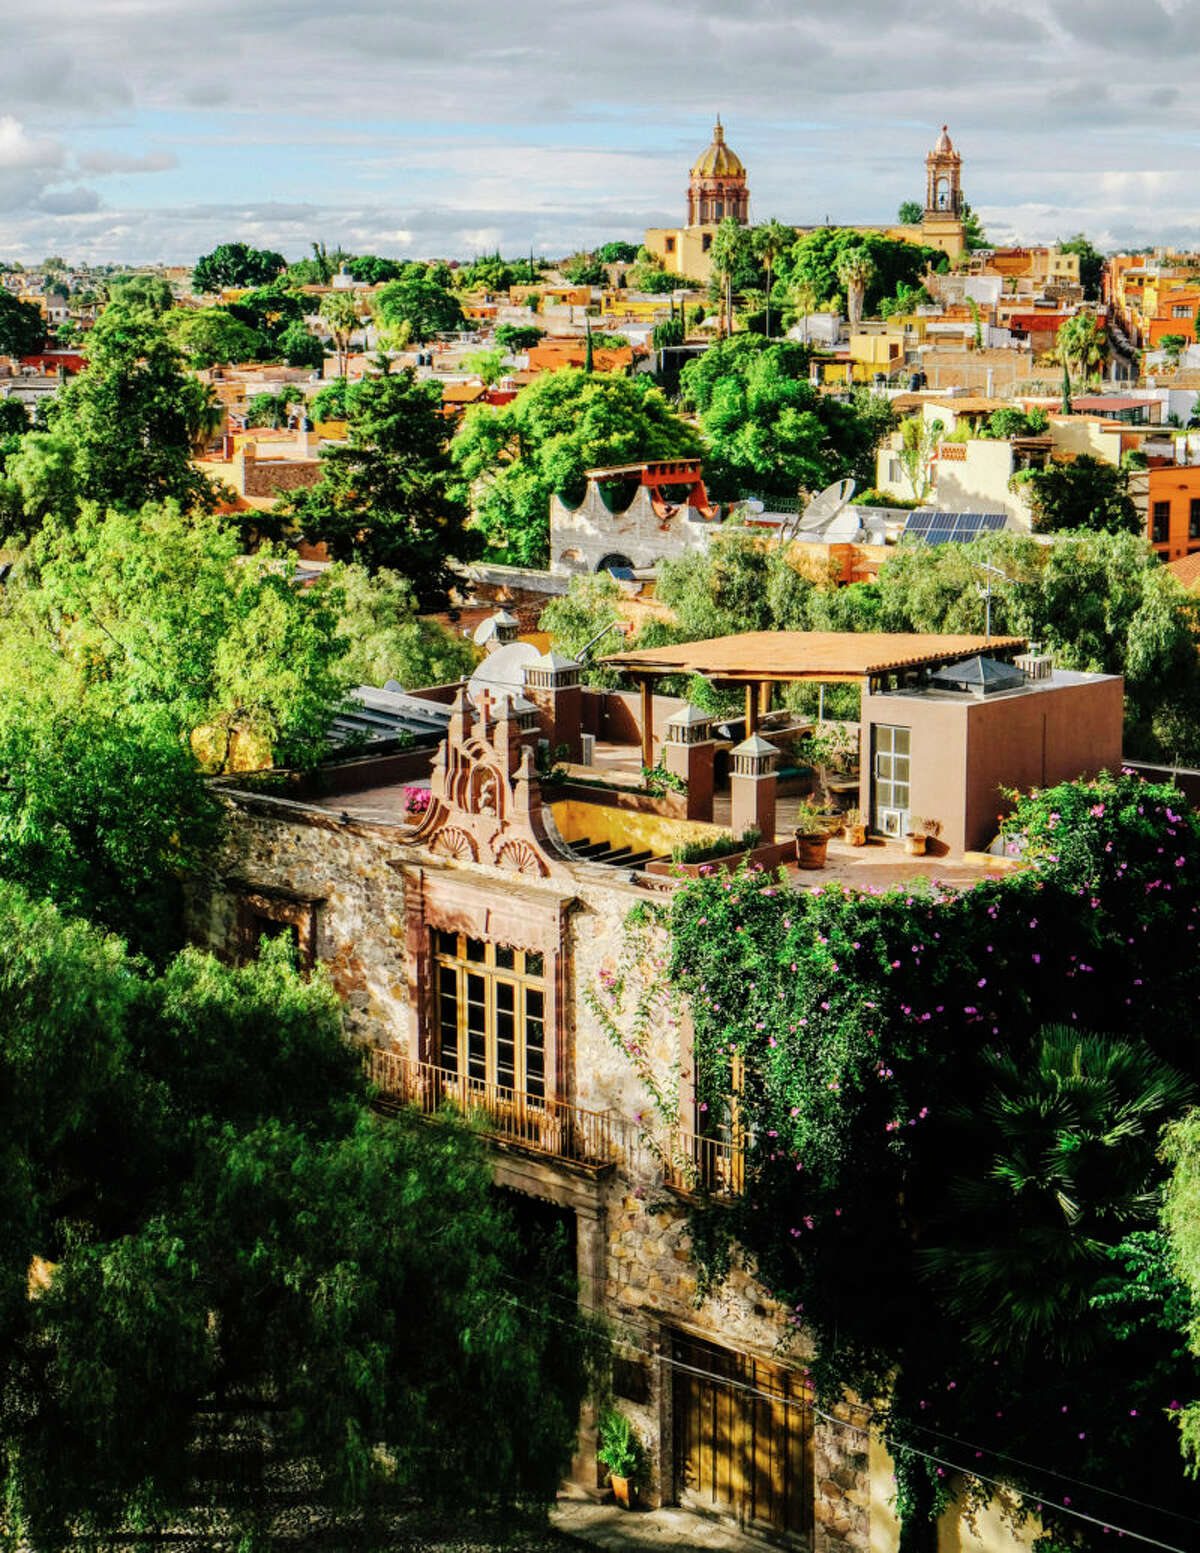 San Miguel de Allende (near Leon, Mexico) Nearly every turn in this UNESCO World Heritage Site is like a shot out of a postcard. San Miguel de Allende's charming cobblestone roads below brightly colored colonial architecture will leave design lovers enamored. Begin at La Parroquia de San Miguel Arcangel, a neo-Gothic 17th-century church with details reminiscent of Spanish architect Antoni Gaudí. Tequila lovers should not miss the opportunity to enjoy both stunning architecture and cocktails at the Casa Dragones Tasting Room. Here, design team Meyer Davis and interior designer Gloria Cortina created an intimate sensory experience with obsidian-tiled walls that reflect Mexican craftsmanship and connection to the region's terroir. For shopping, enjoy the beauty of local artisan craftwork at La Calaca. At night, watch the city twinkle below from Rosewood's well-loved rooftop tapas bar, Luna.